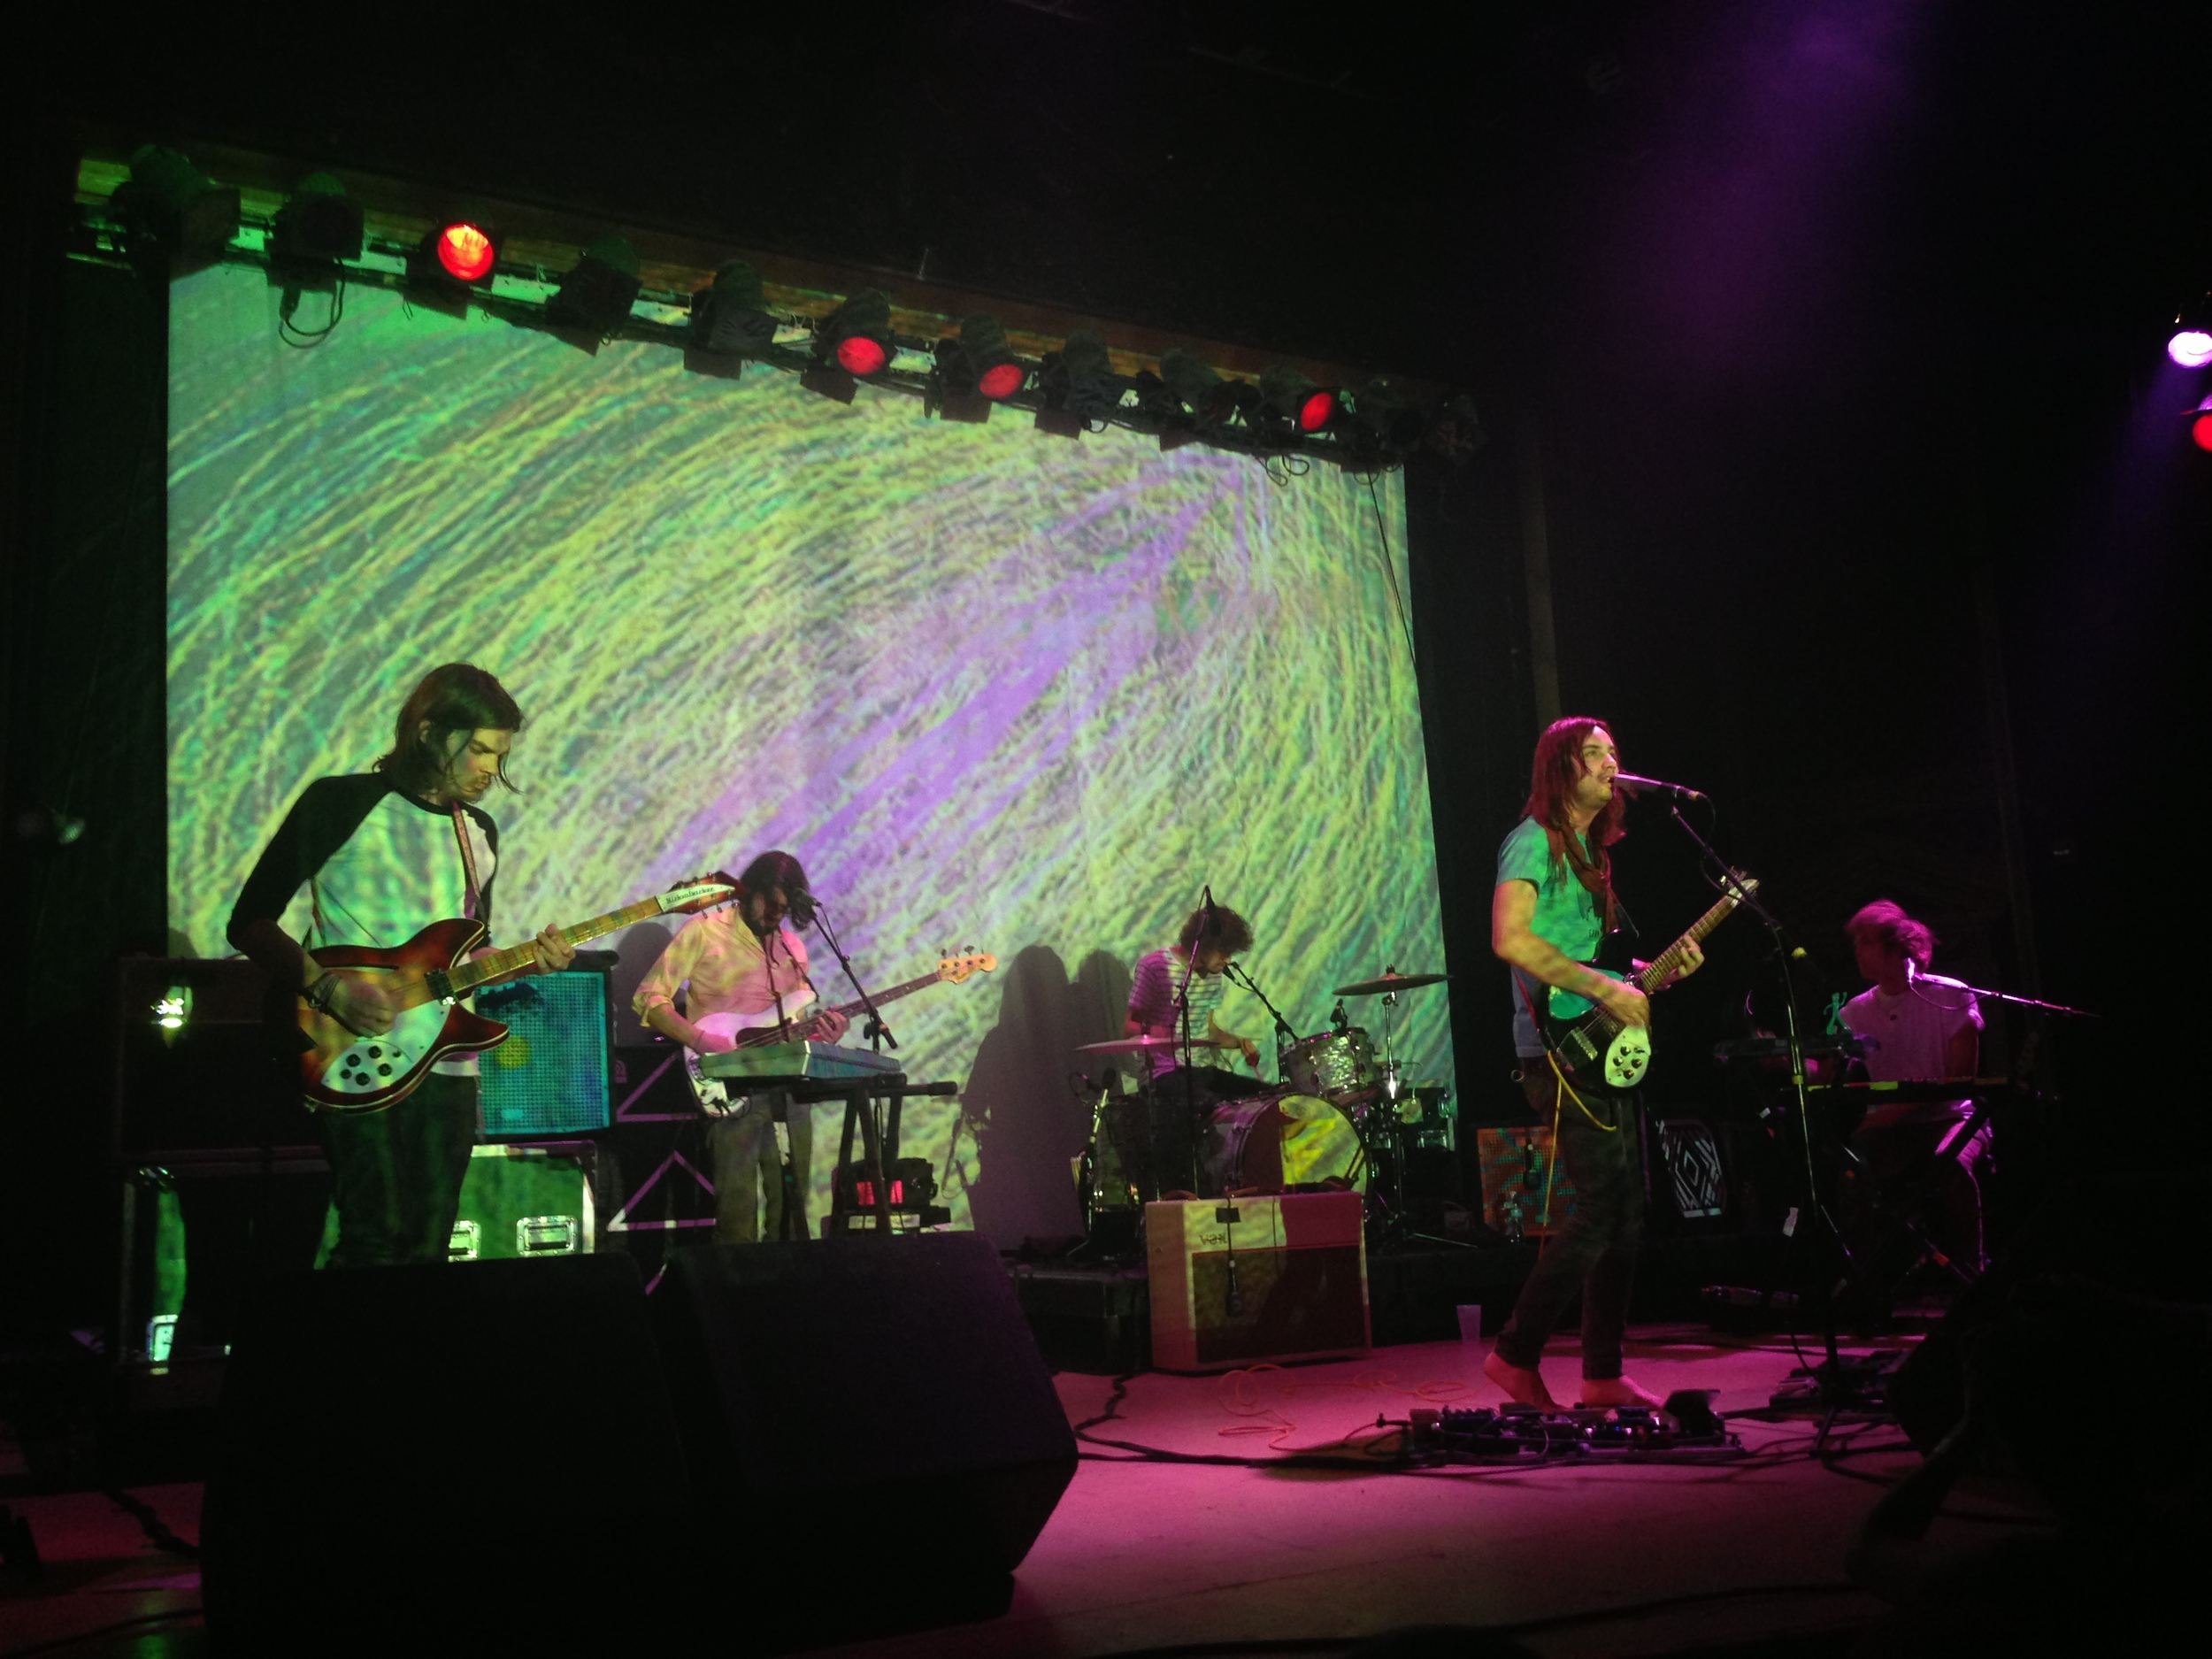 Tame Impala at the Ogden Theatre